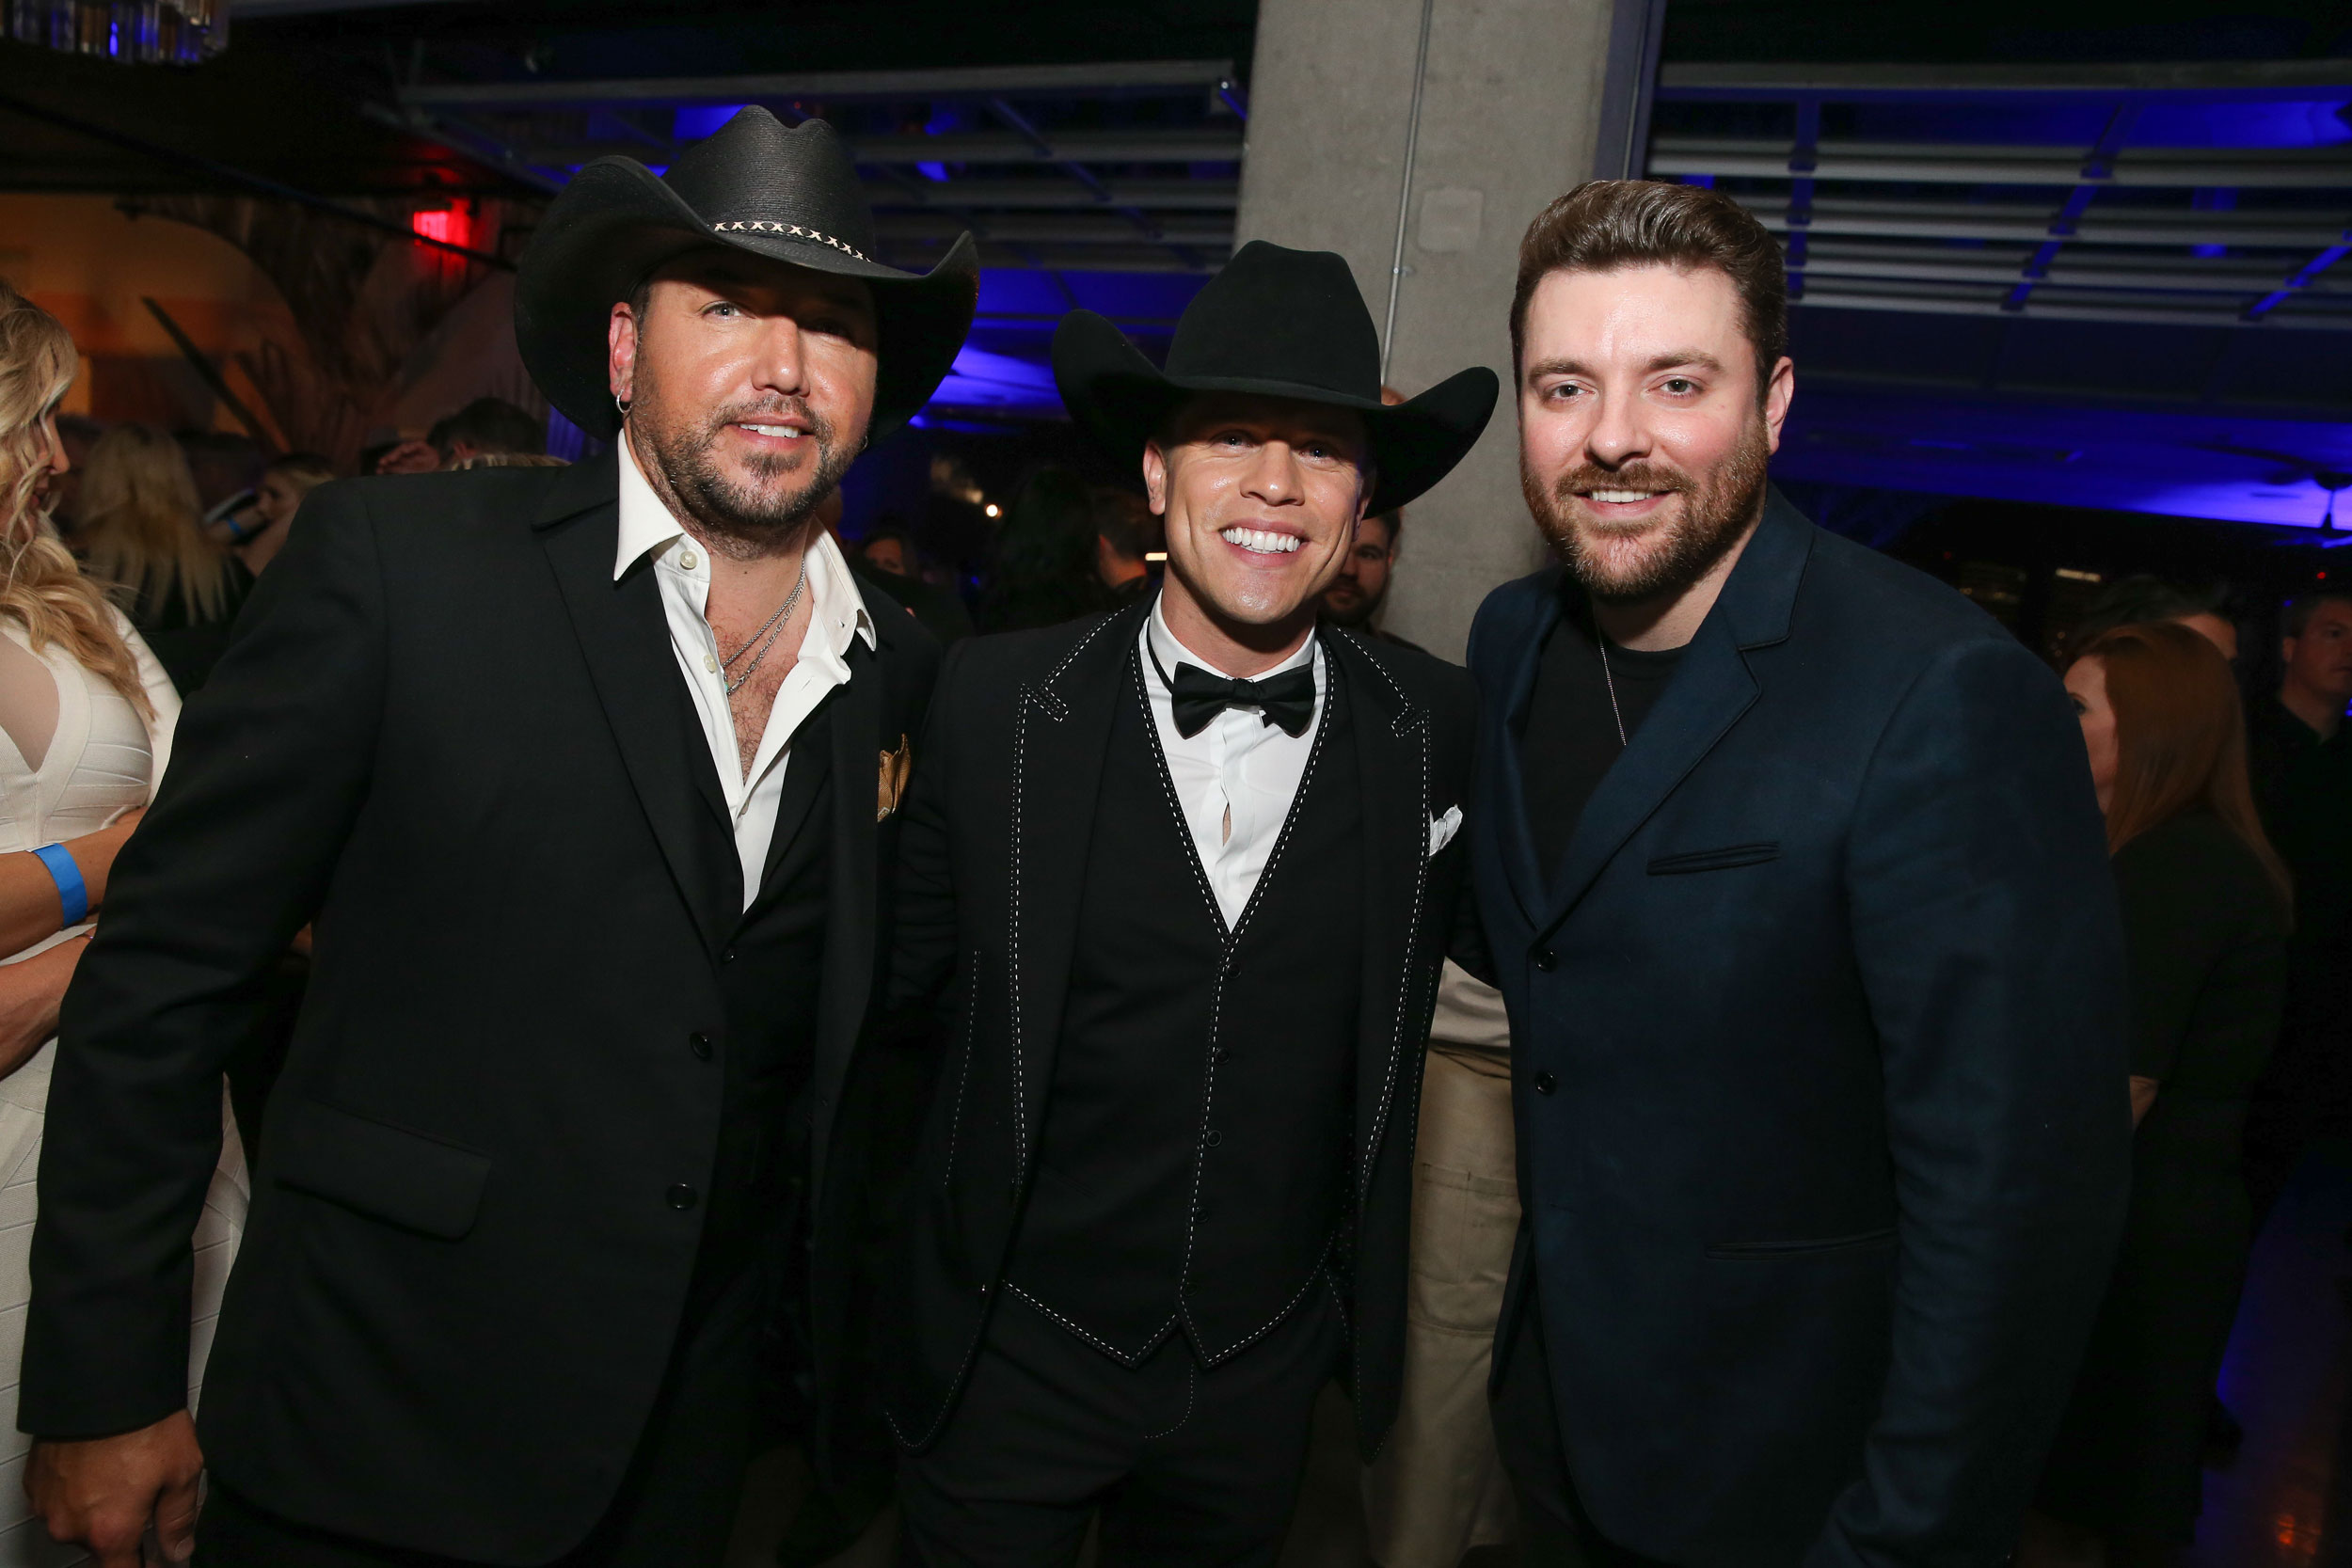 Jason Aldean•Dustin Lynch•Chris Young